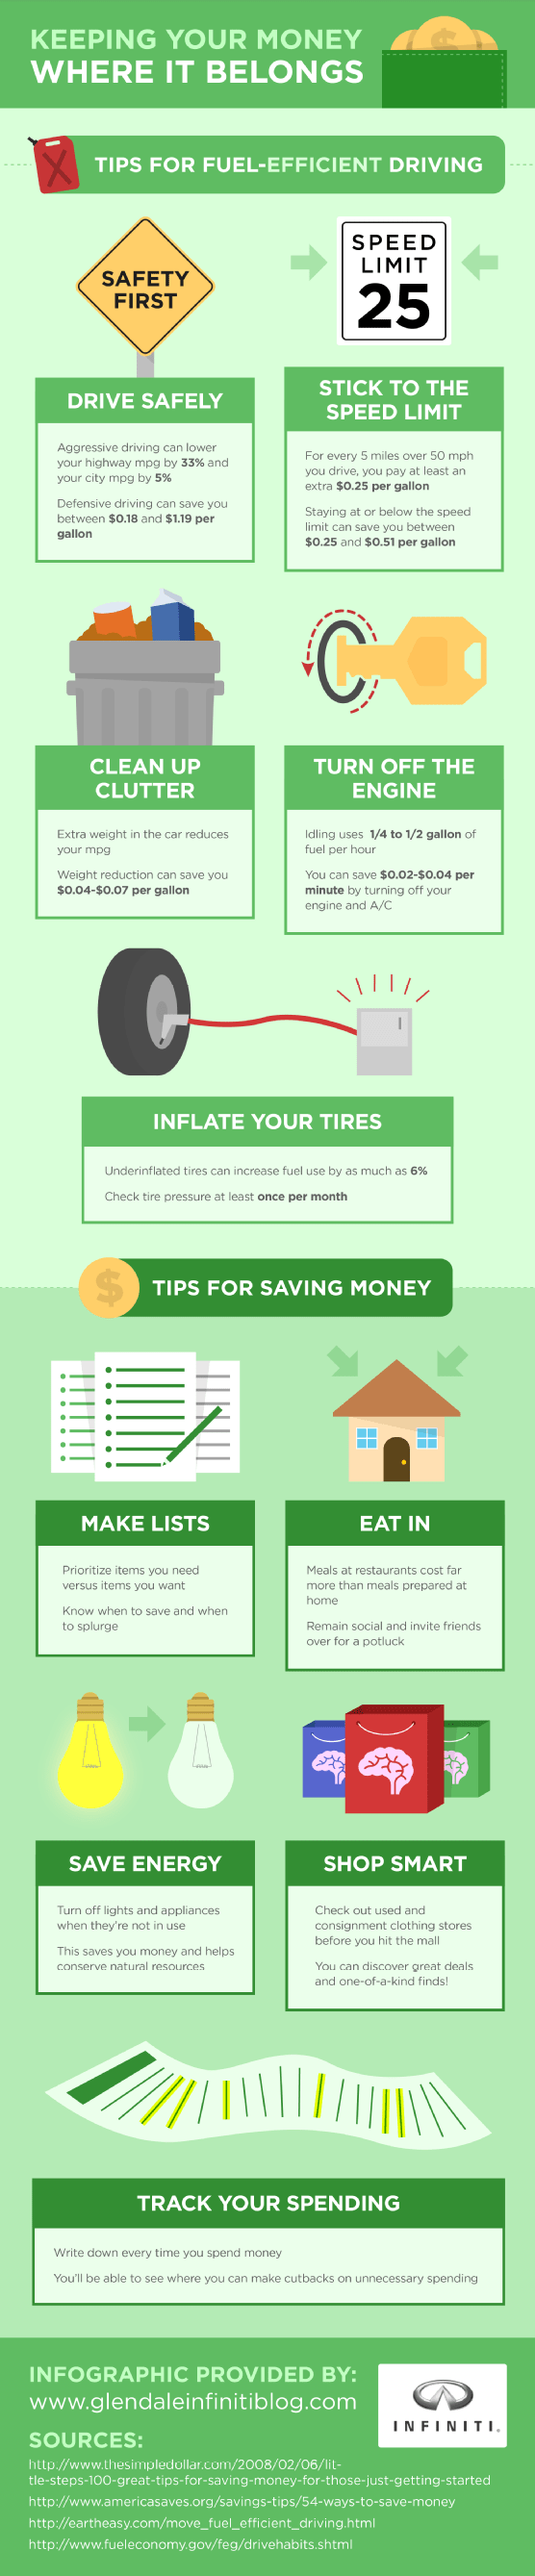 tips-for-saving-mpg--keeping-your-money-where-it-belongs_51ec40c70c9b2